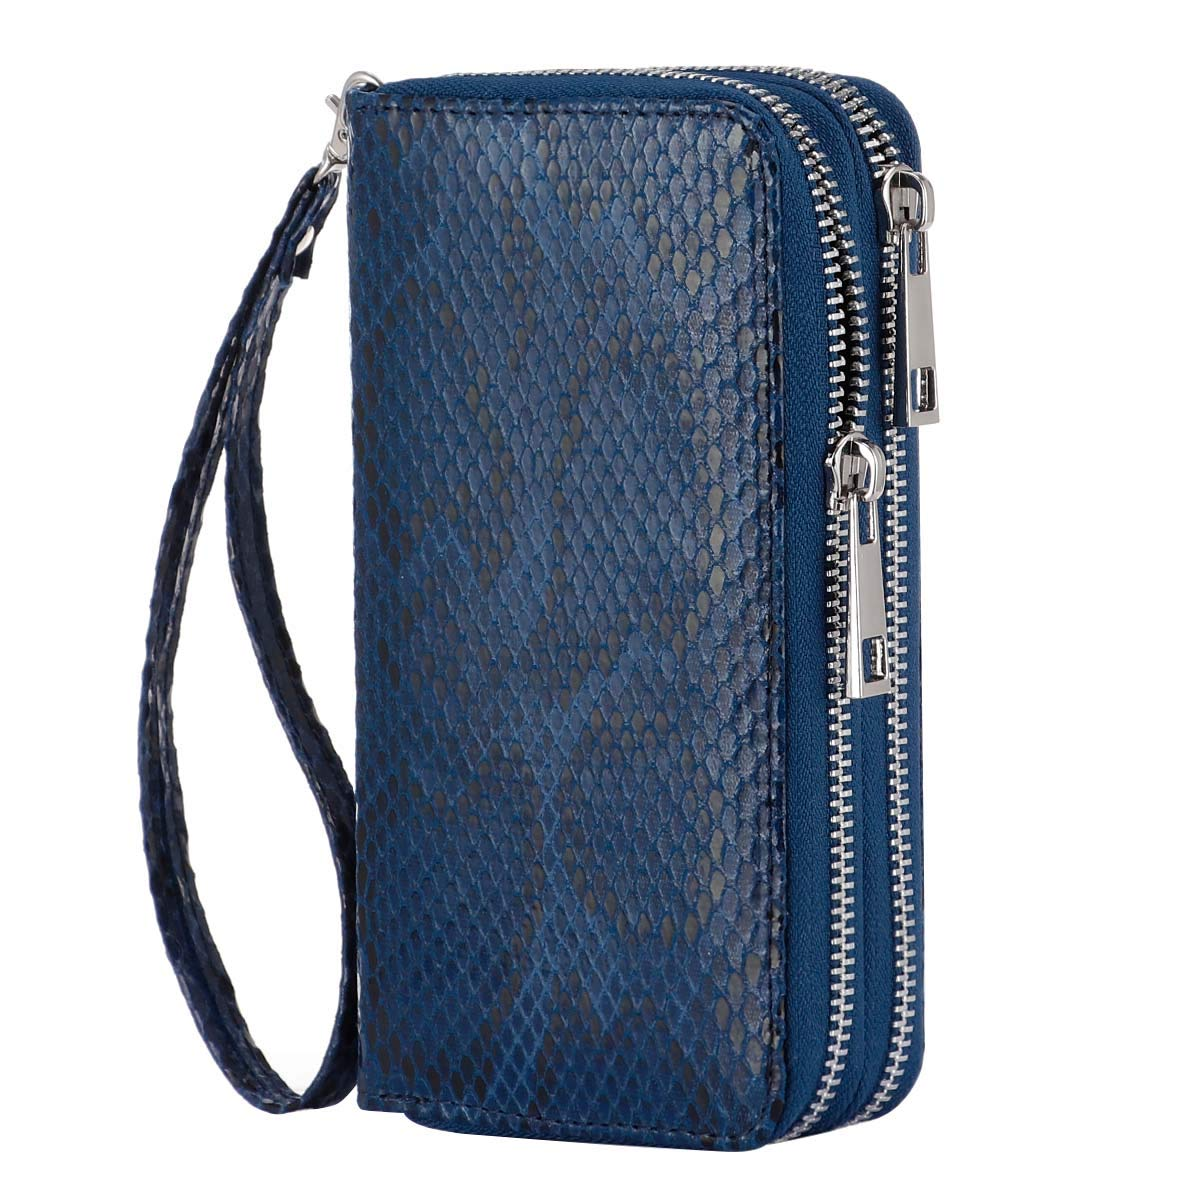 HAWEE Cellphone Wallet Dual Zipper Wristlet Purse with Credit Card Case/Coin Pouch/Smart Phone Pocket Soft Leather for Women or Lady, Indigo Blue-Soft Snakeskin Pattern by HAWEE